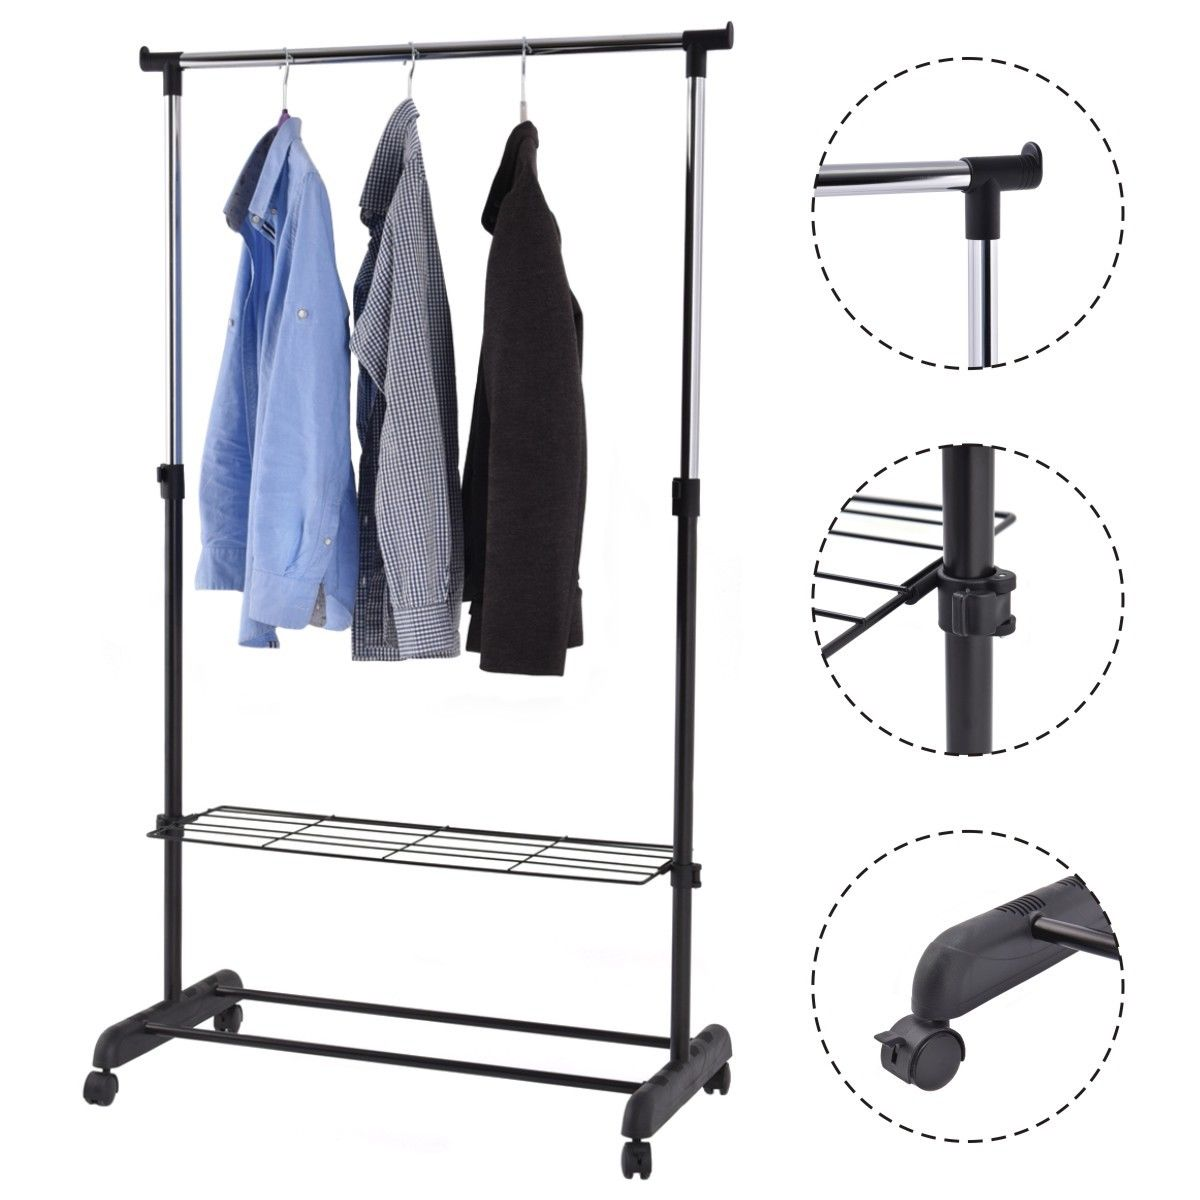 Costway Adjustable Rolling Garment Rack Heavy Duty Clothes Hanger w/ Shoe Rack Portable